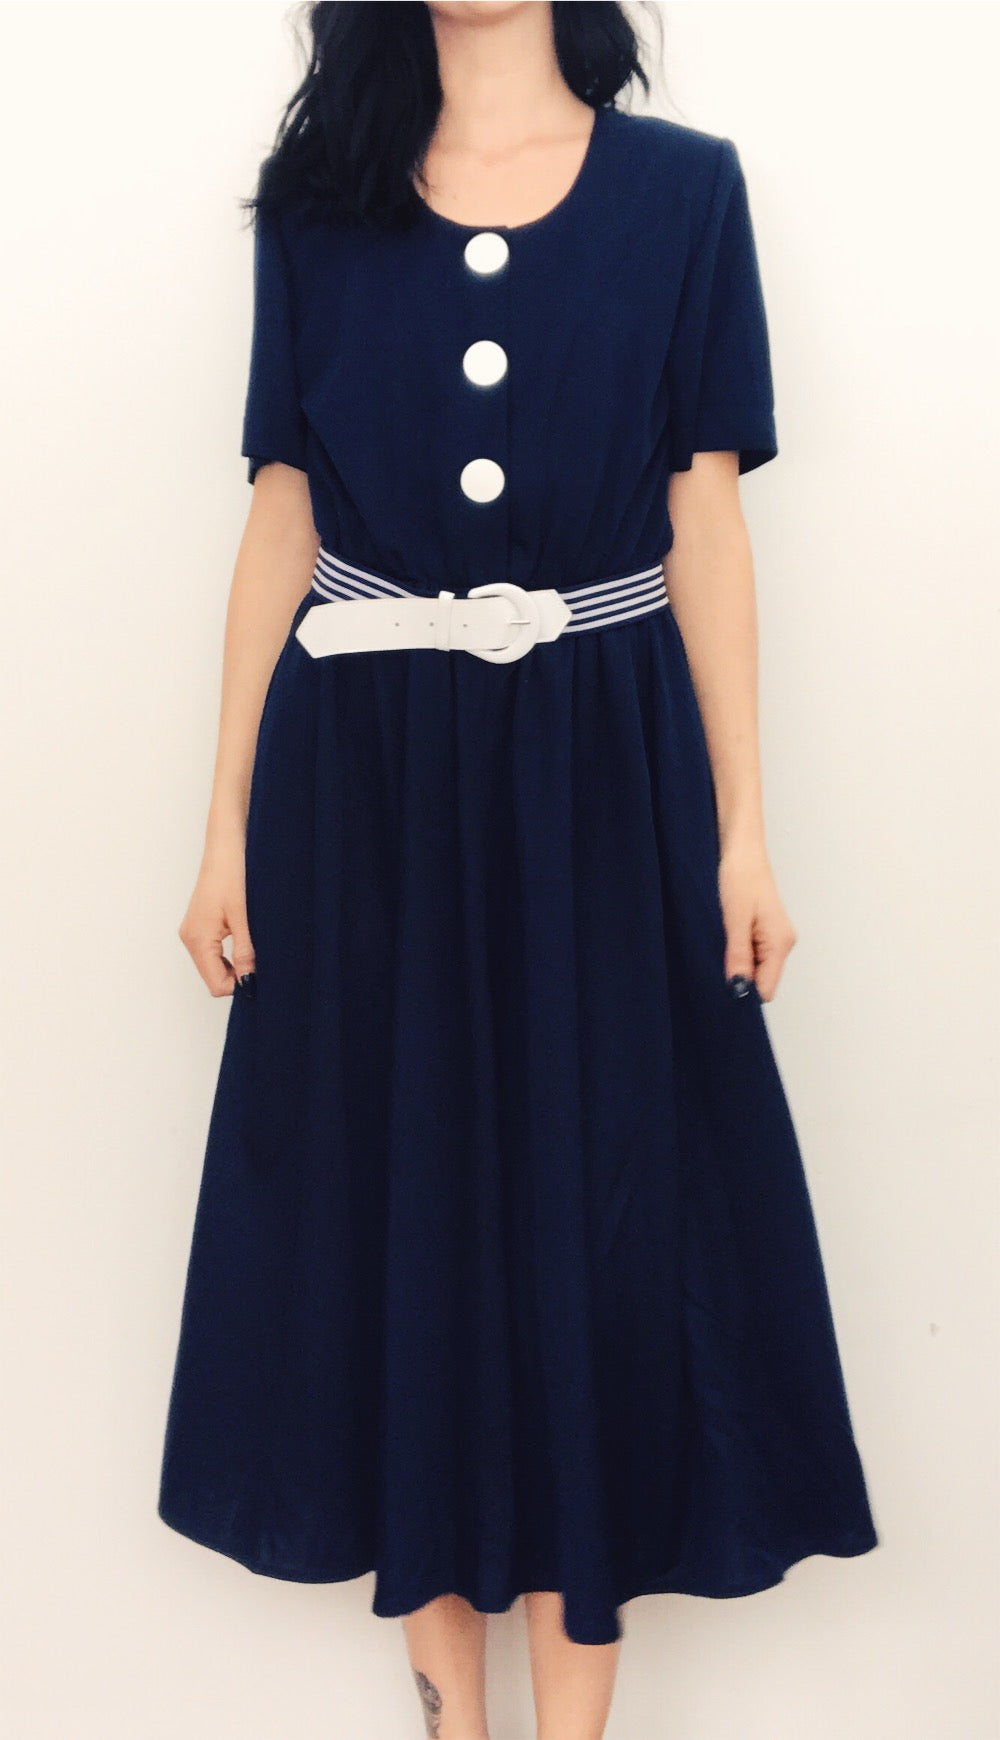 Take Me Sailing Dress